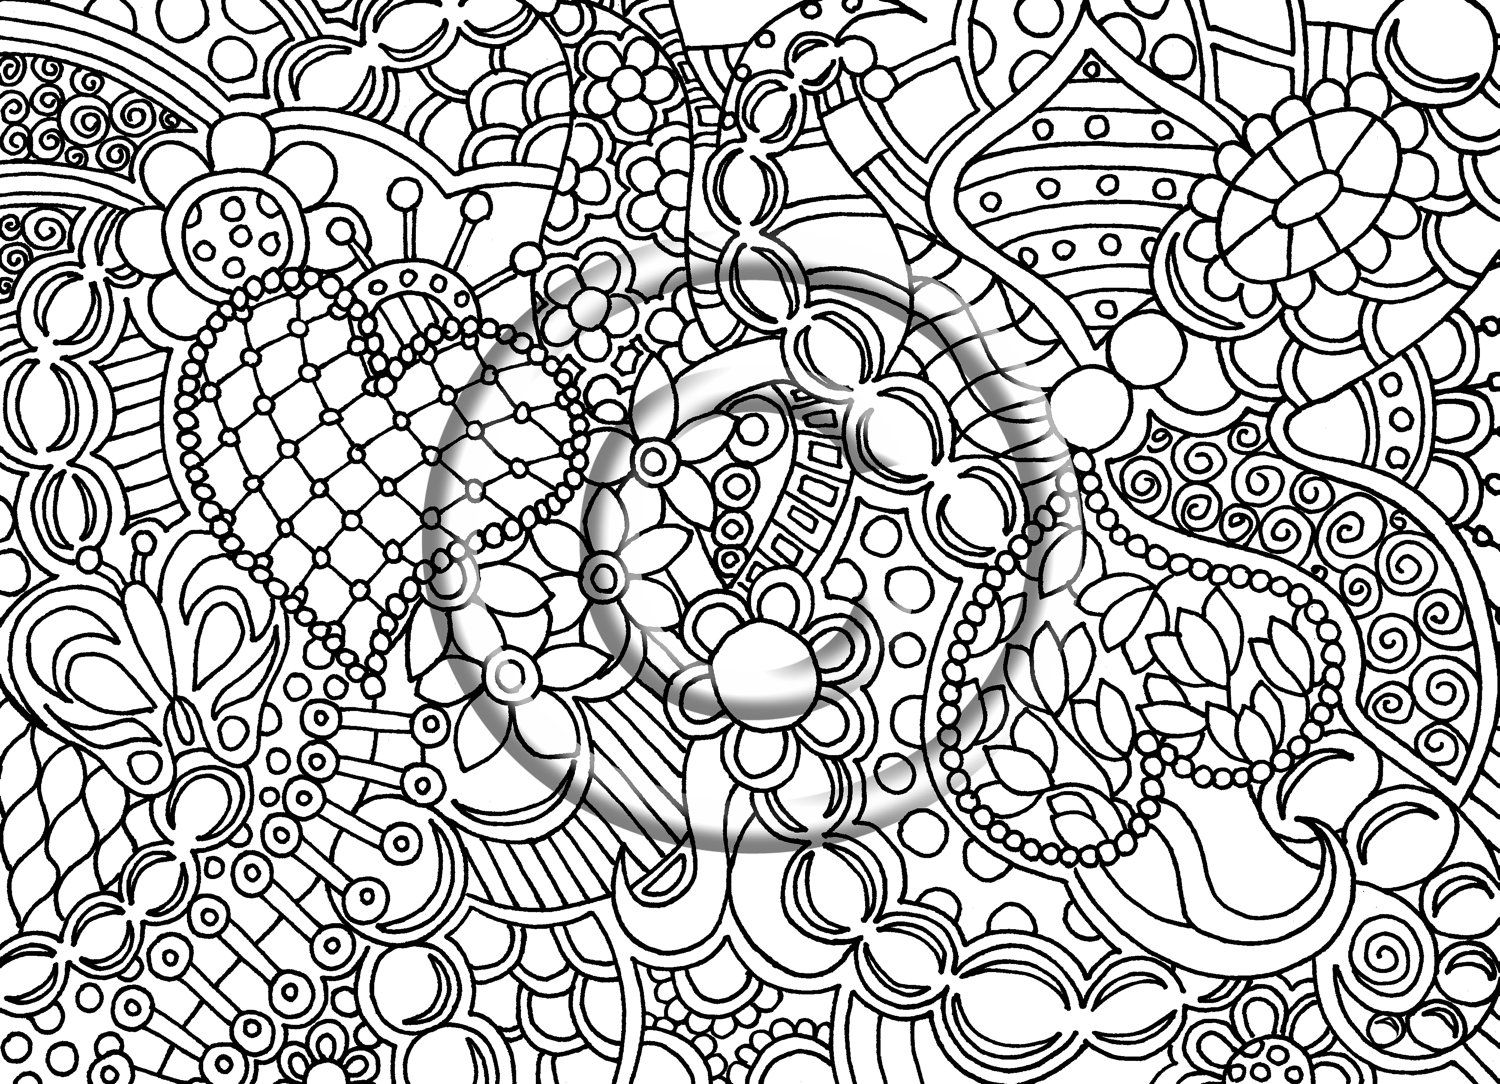 Printable Download Coloring Page, Hand Drawn Zentangle